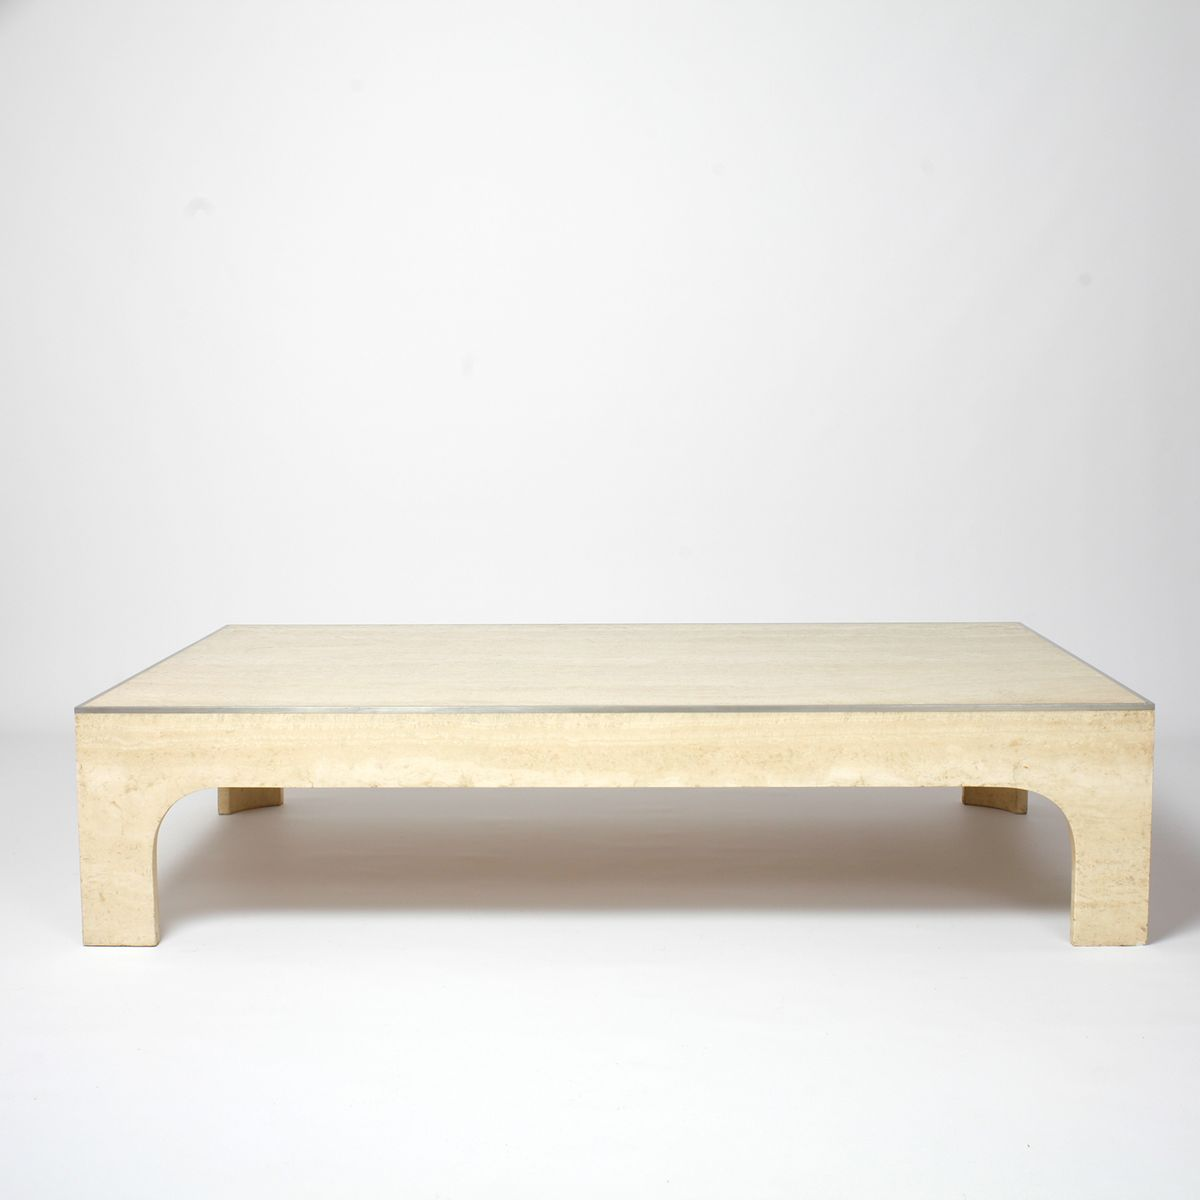 Vintage travertine coffee table by willy rizzo for sale at pamono geotapseo Image collections